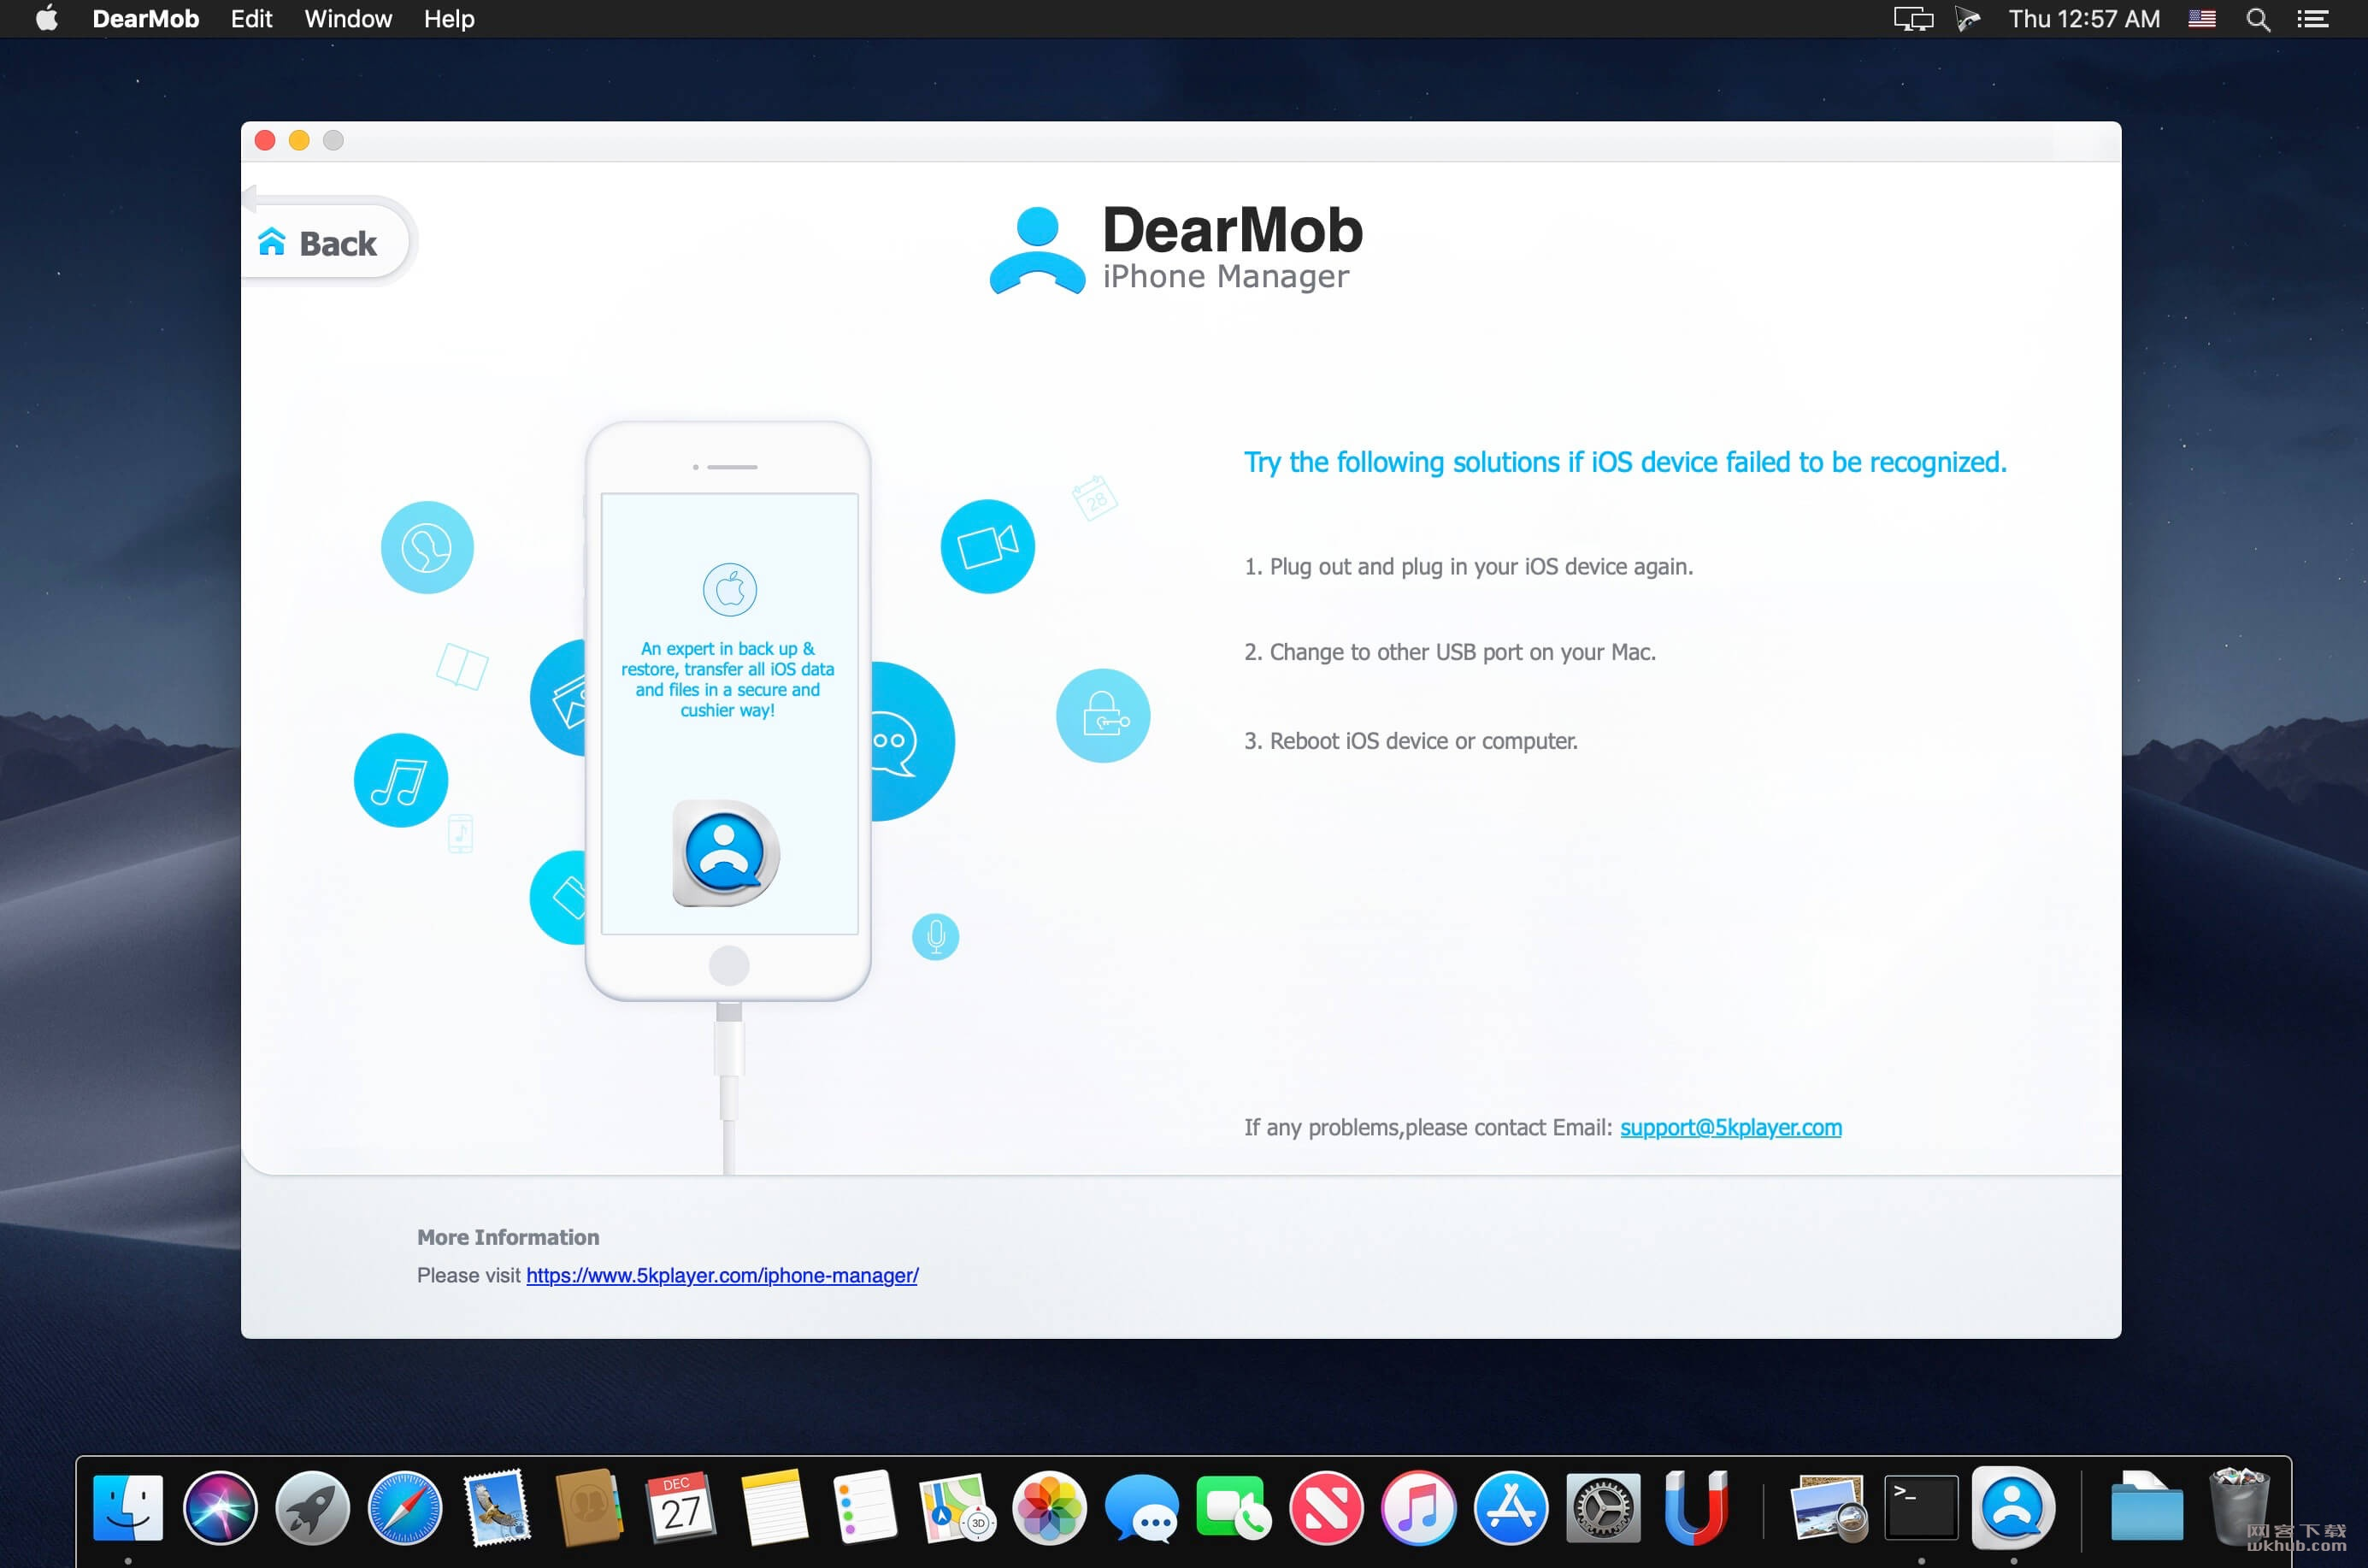 DearMob iPhone Manager 4.2 简易的iOS管理工具